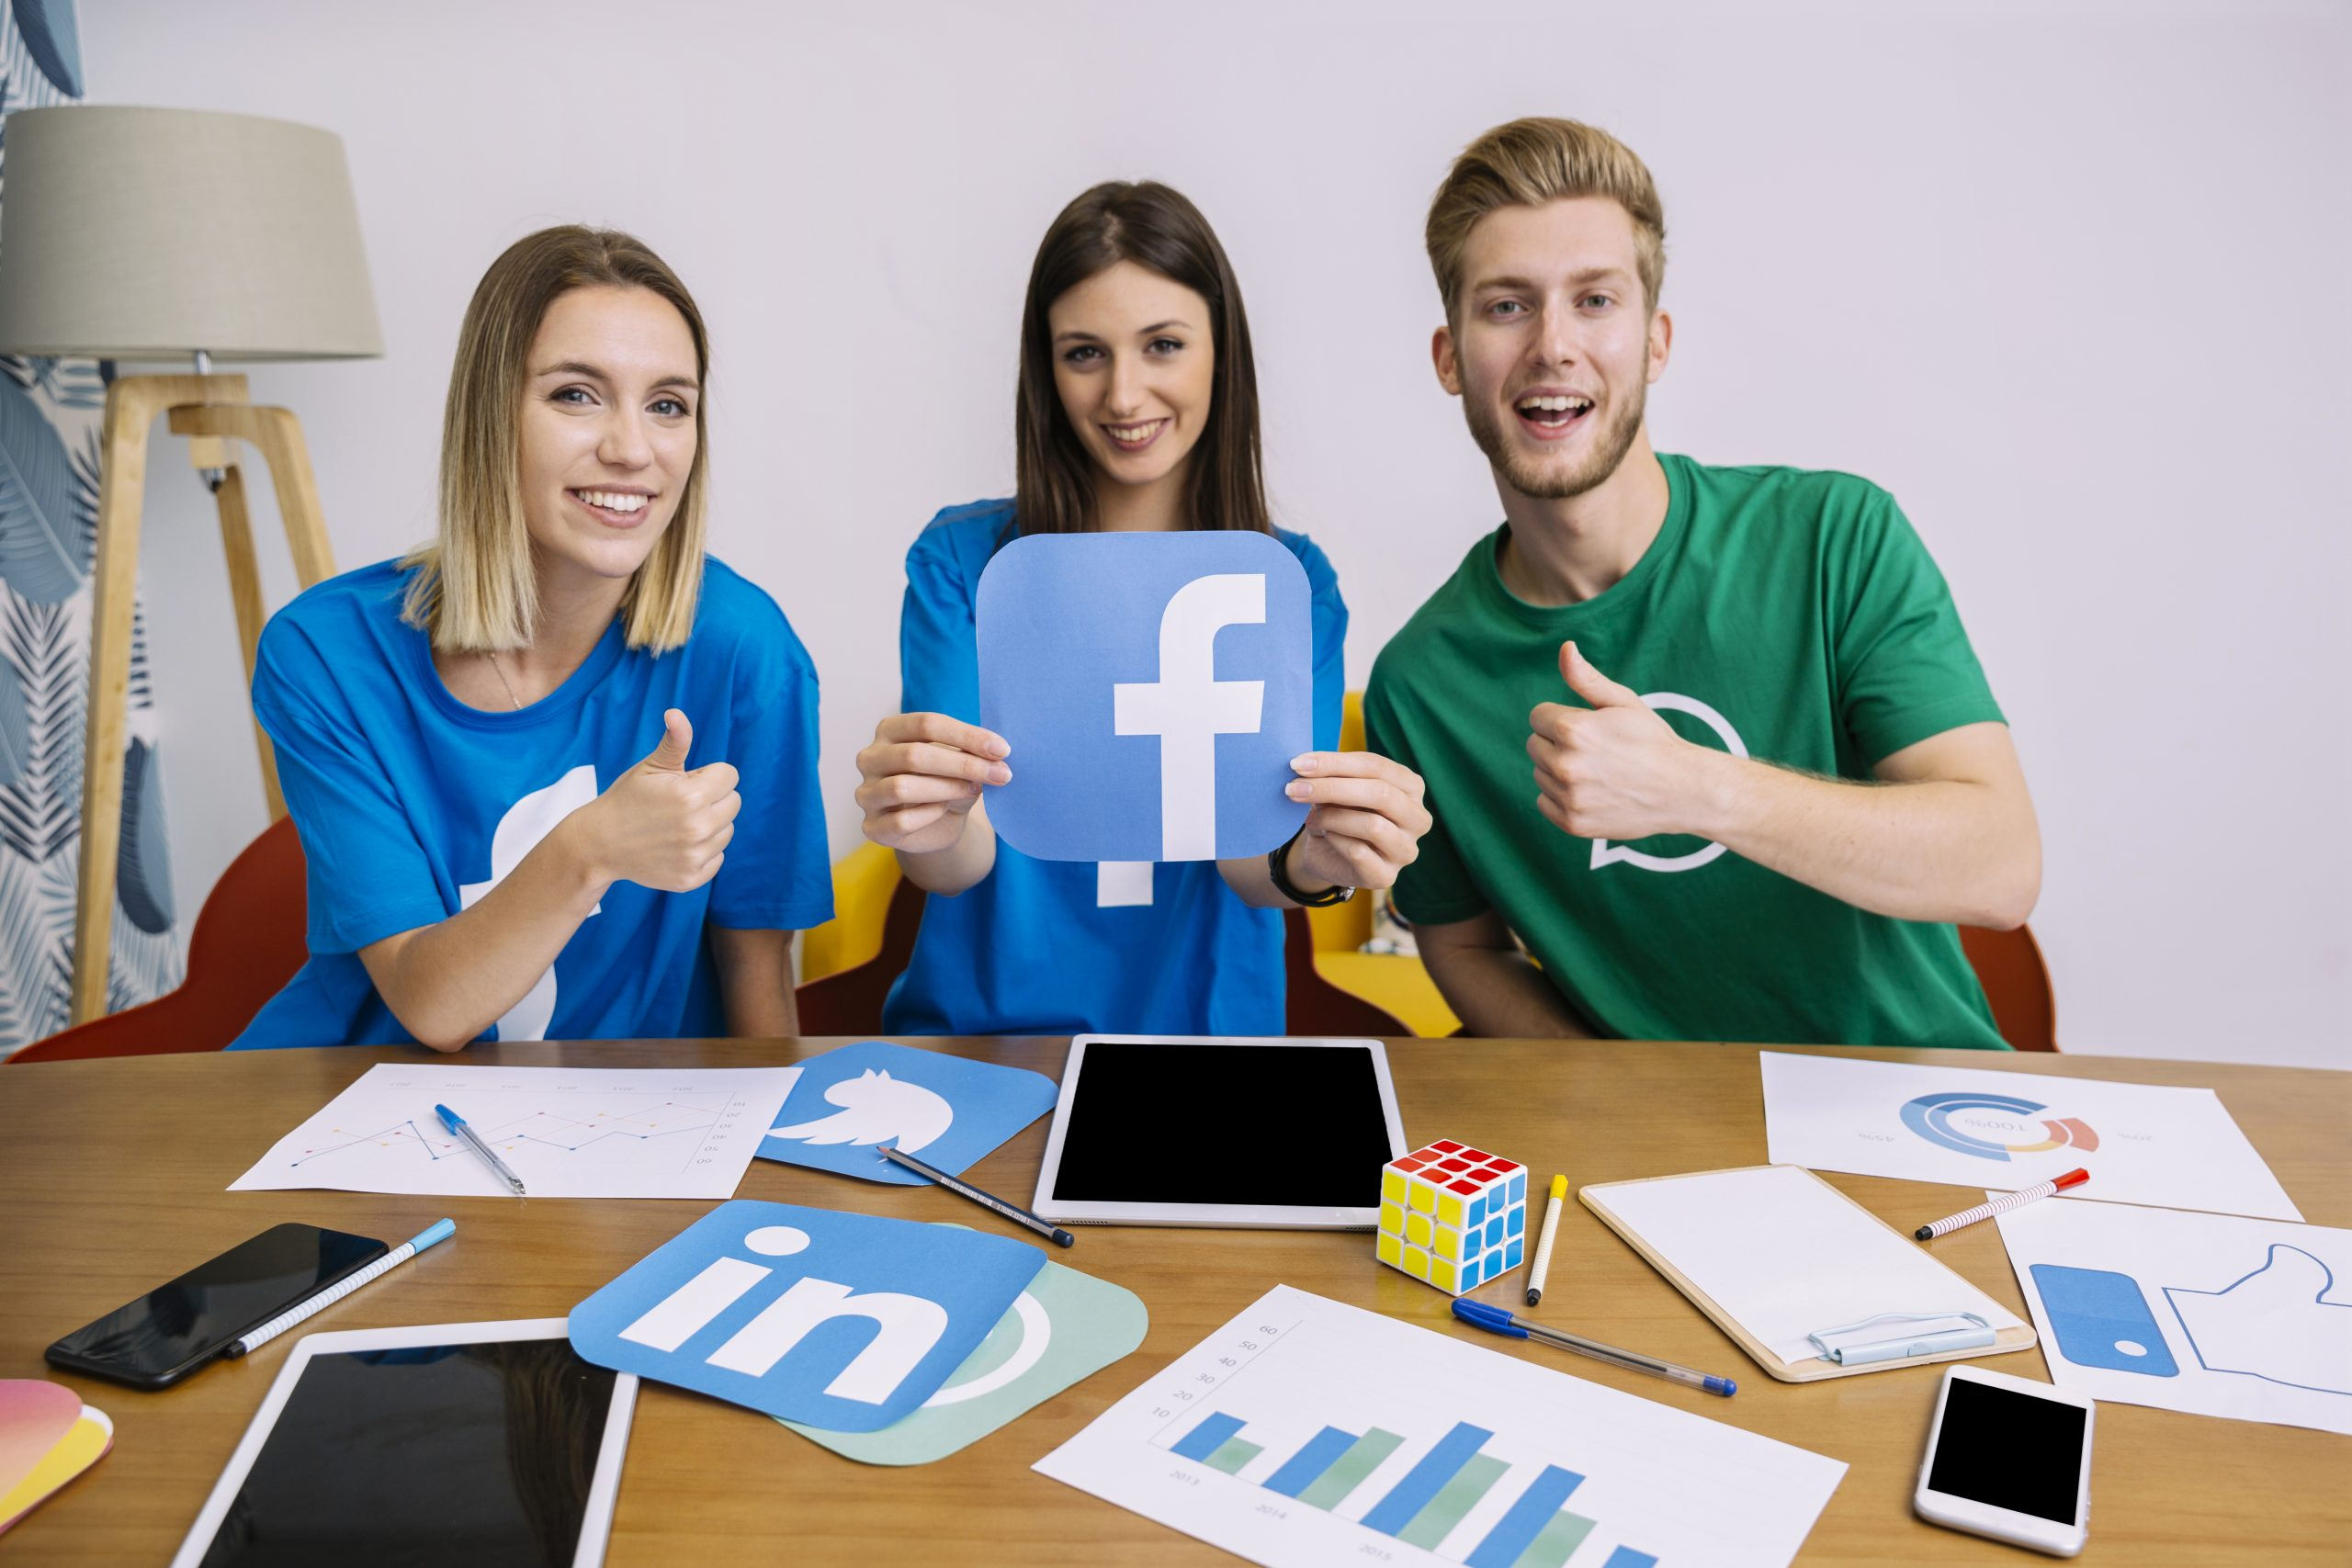 What differentiates Facebook Watch? Ways to use it constructively.